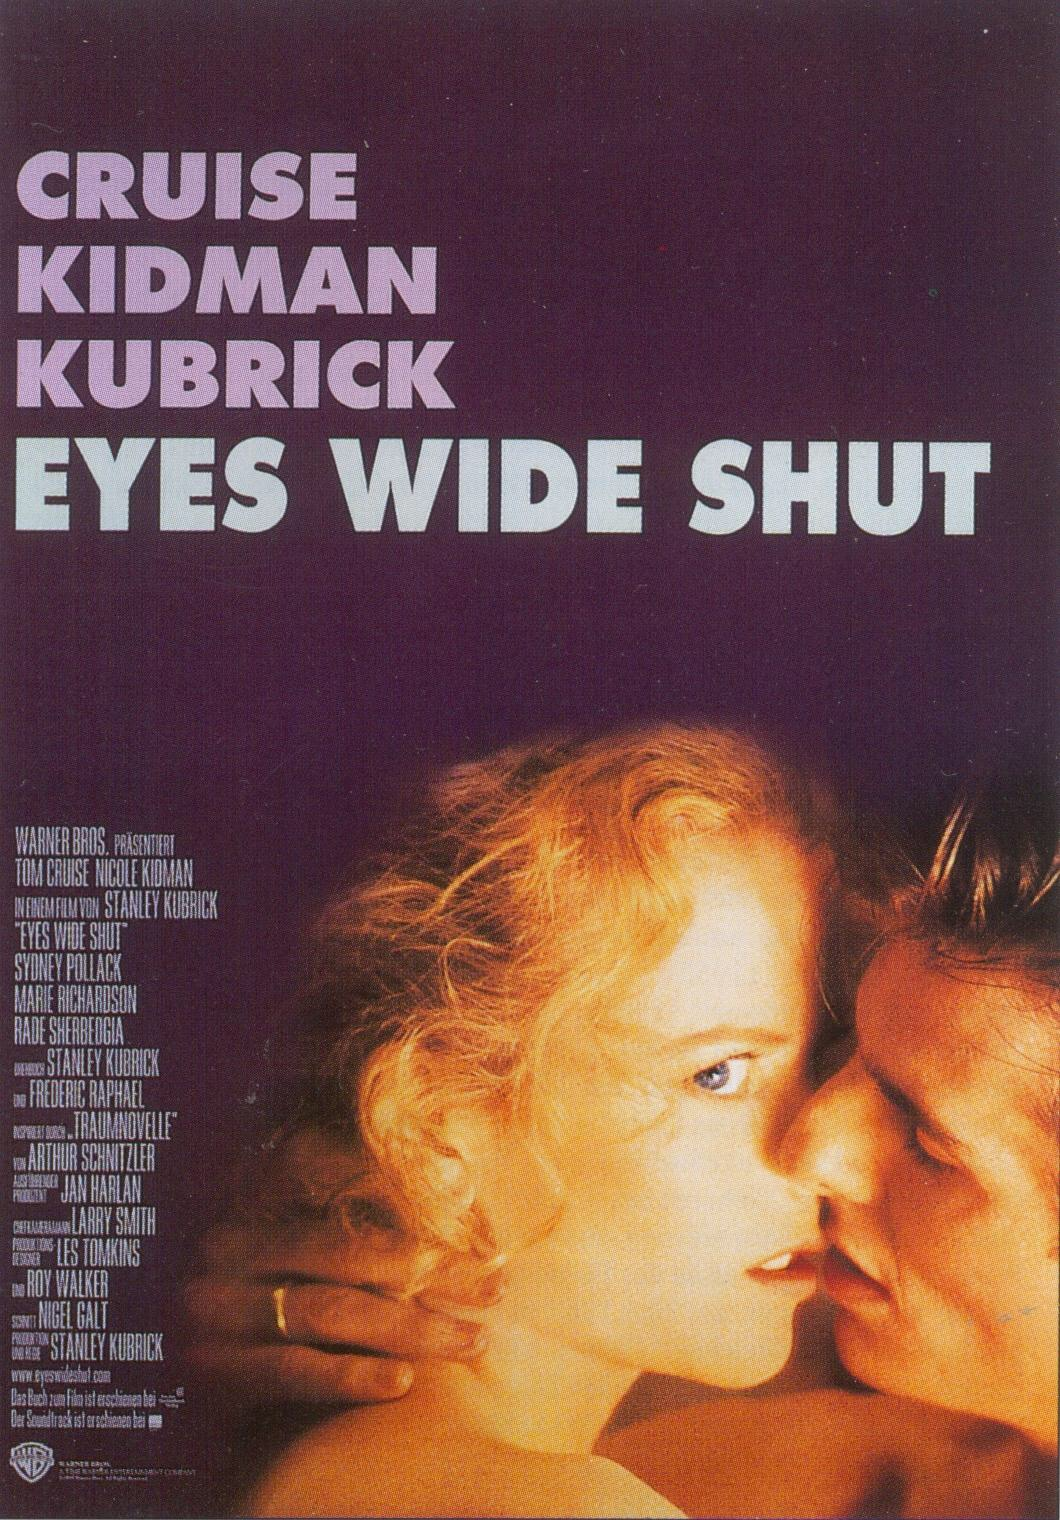 The poster showing Cruise and Kidman kissing but she is looking at that camera rather than her husband